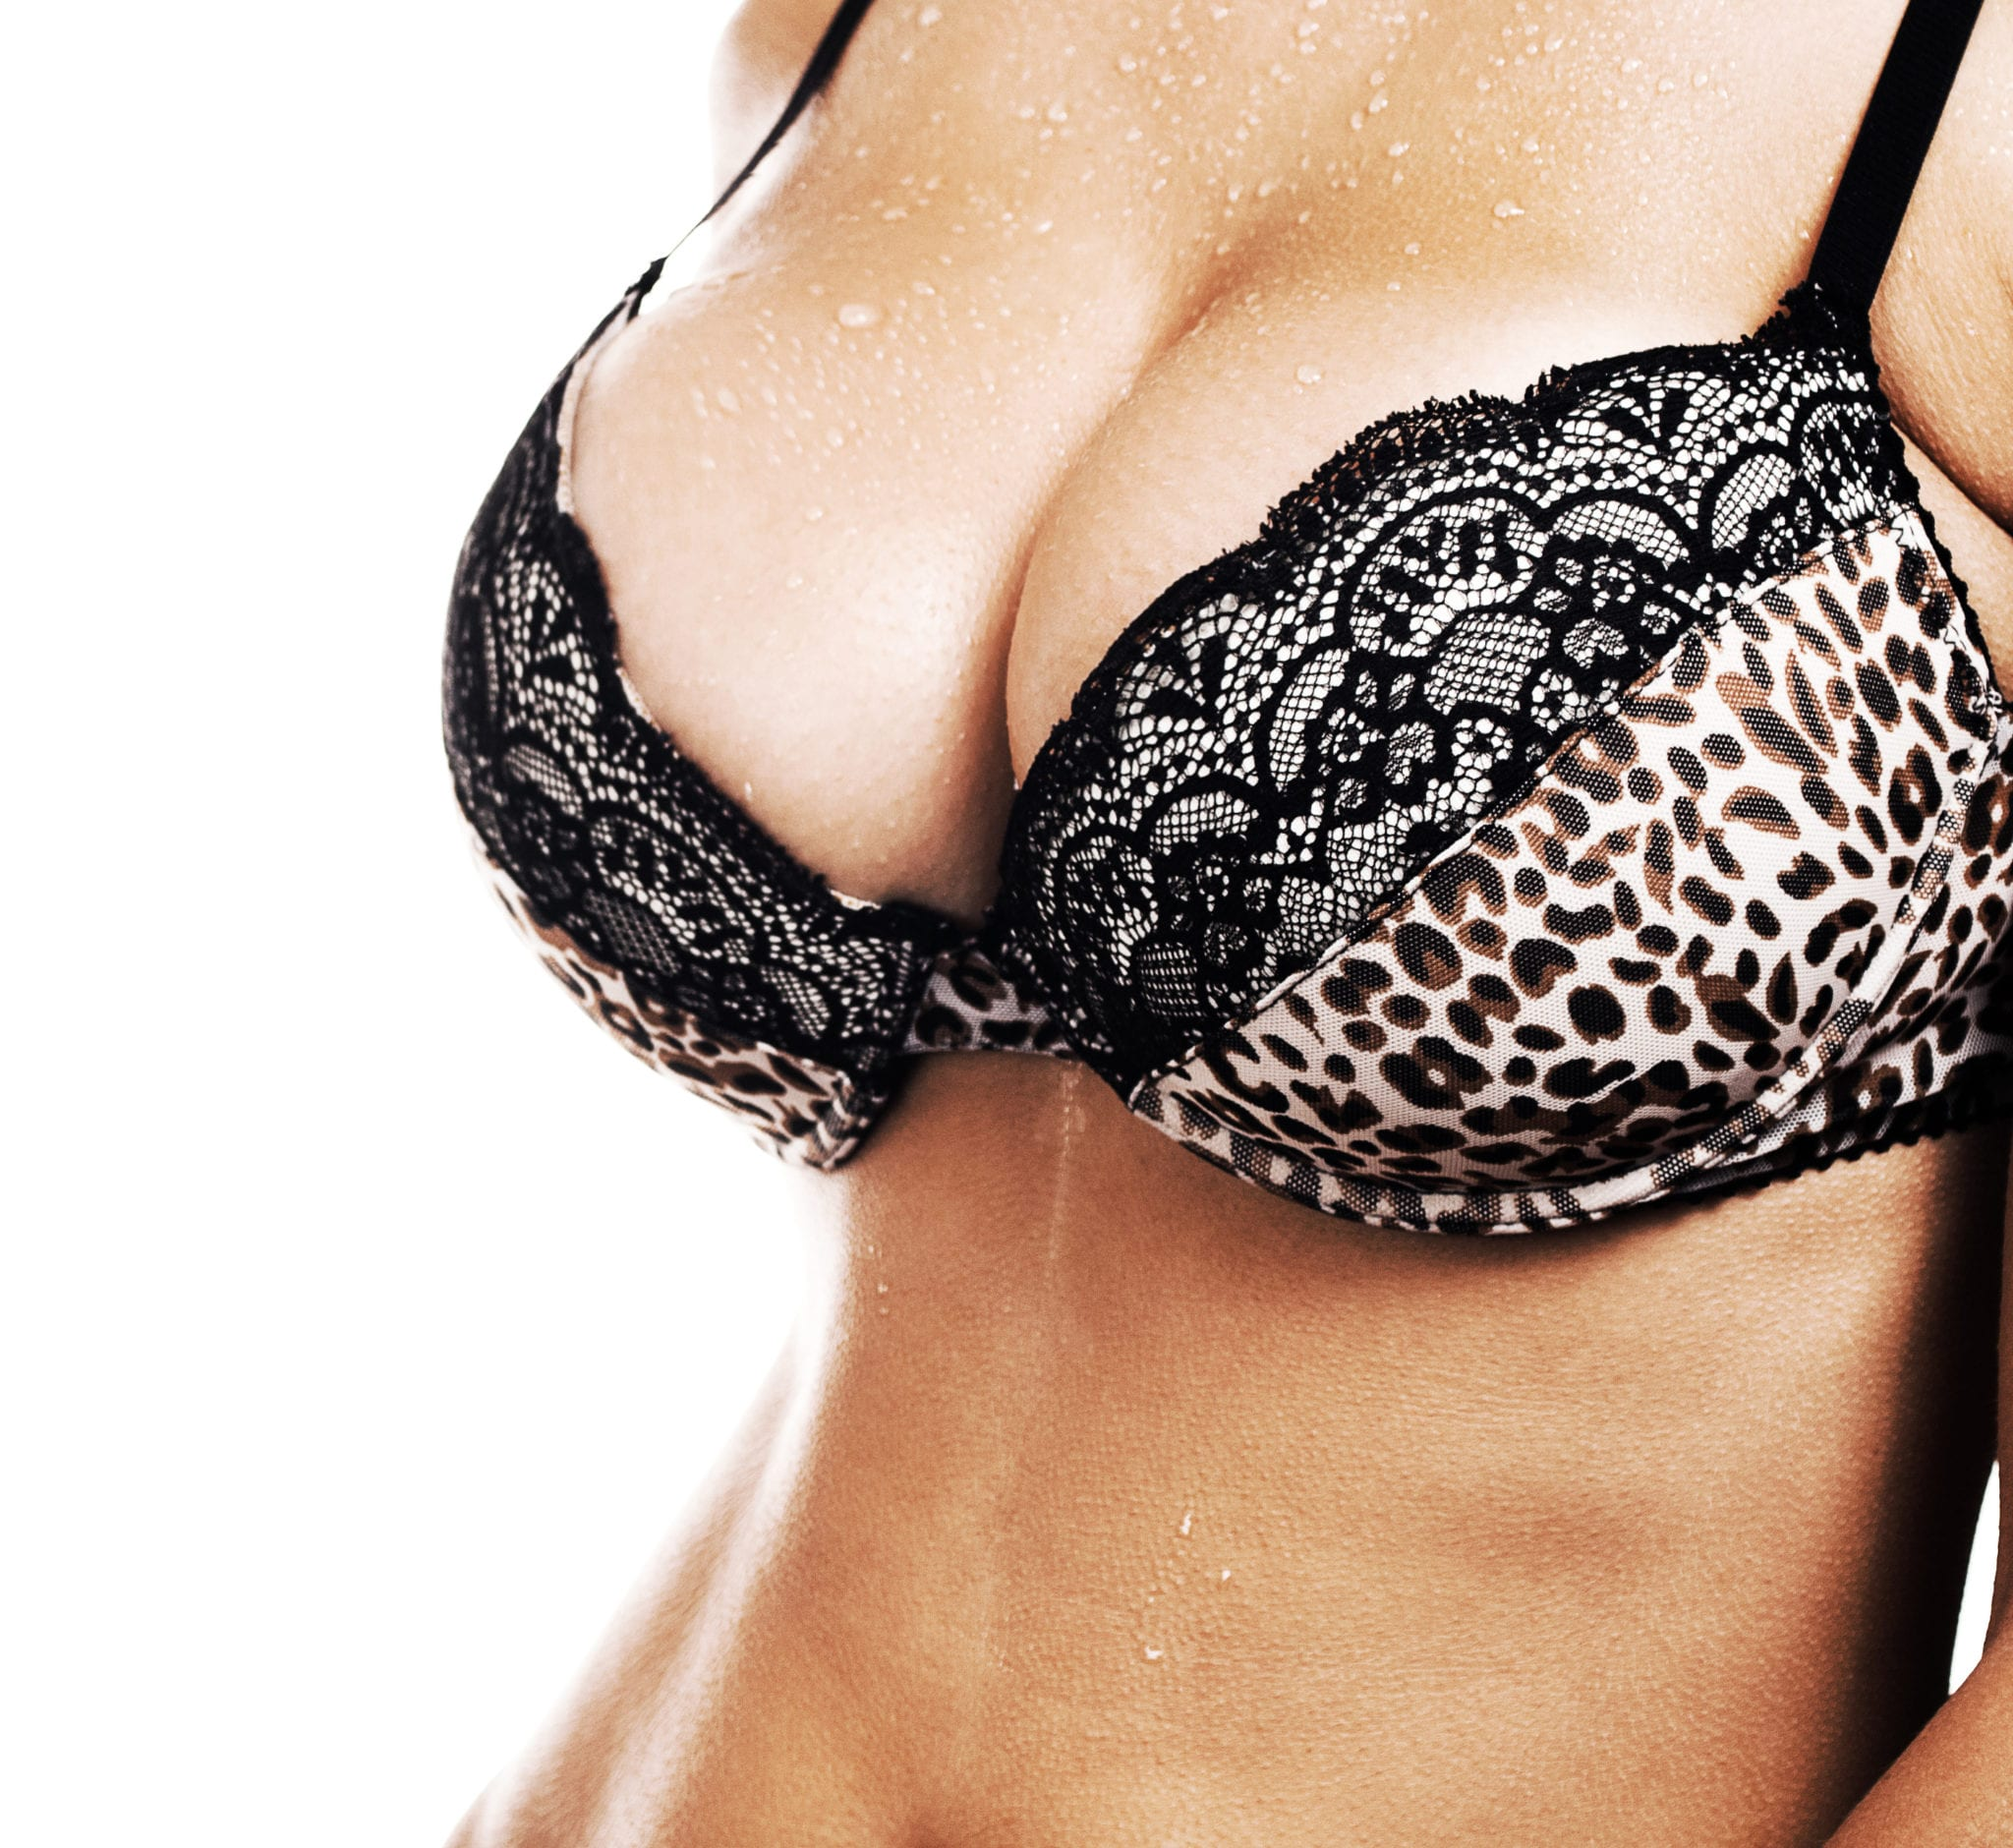 How To Clean Your Incision Site After A Breast Augmentation Blog